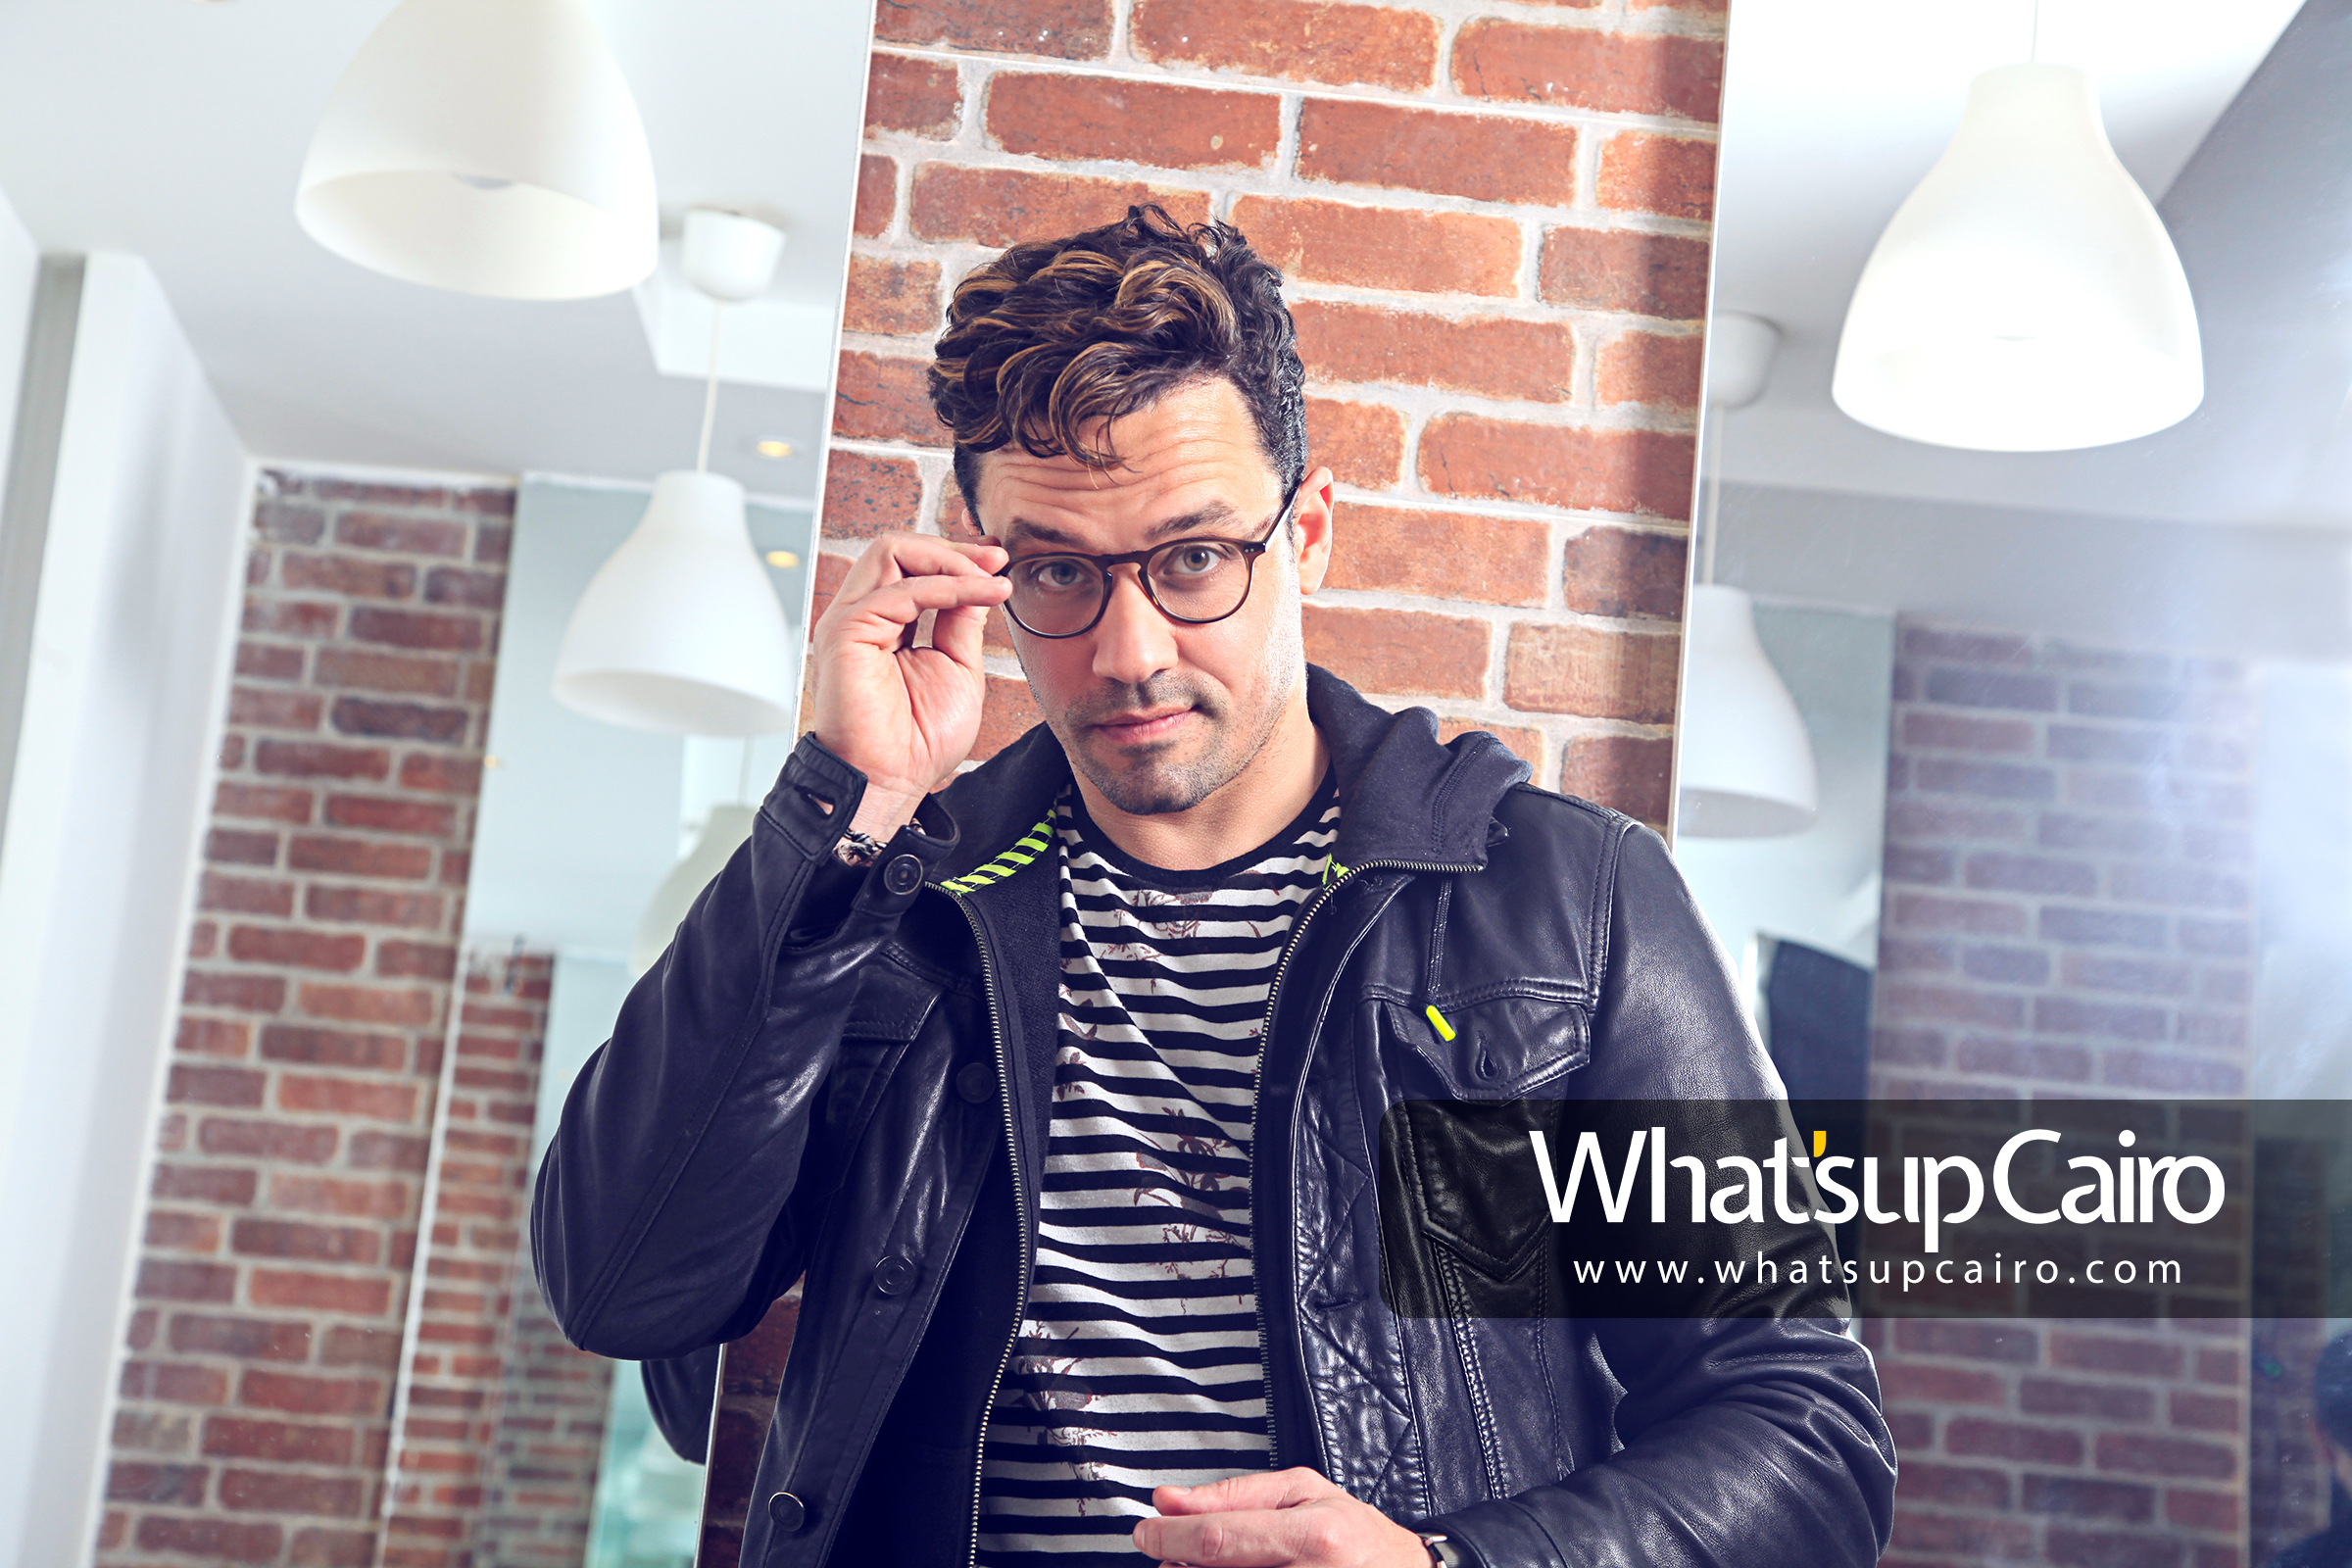 Ashraf Hamdy What's up Cairo interview 2018